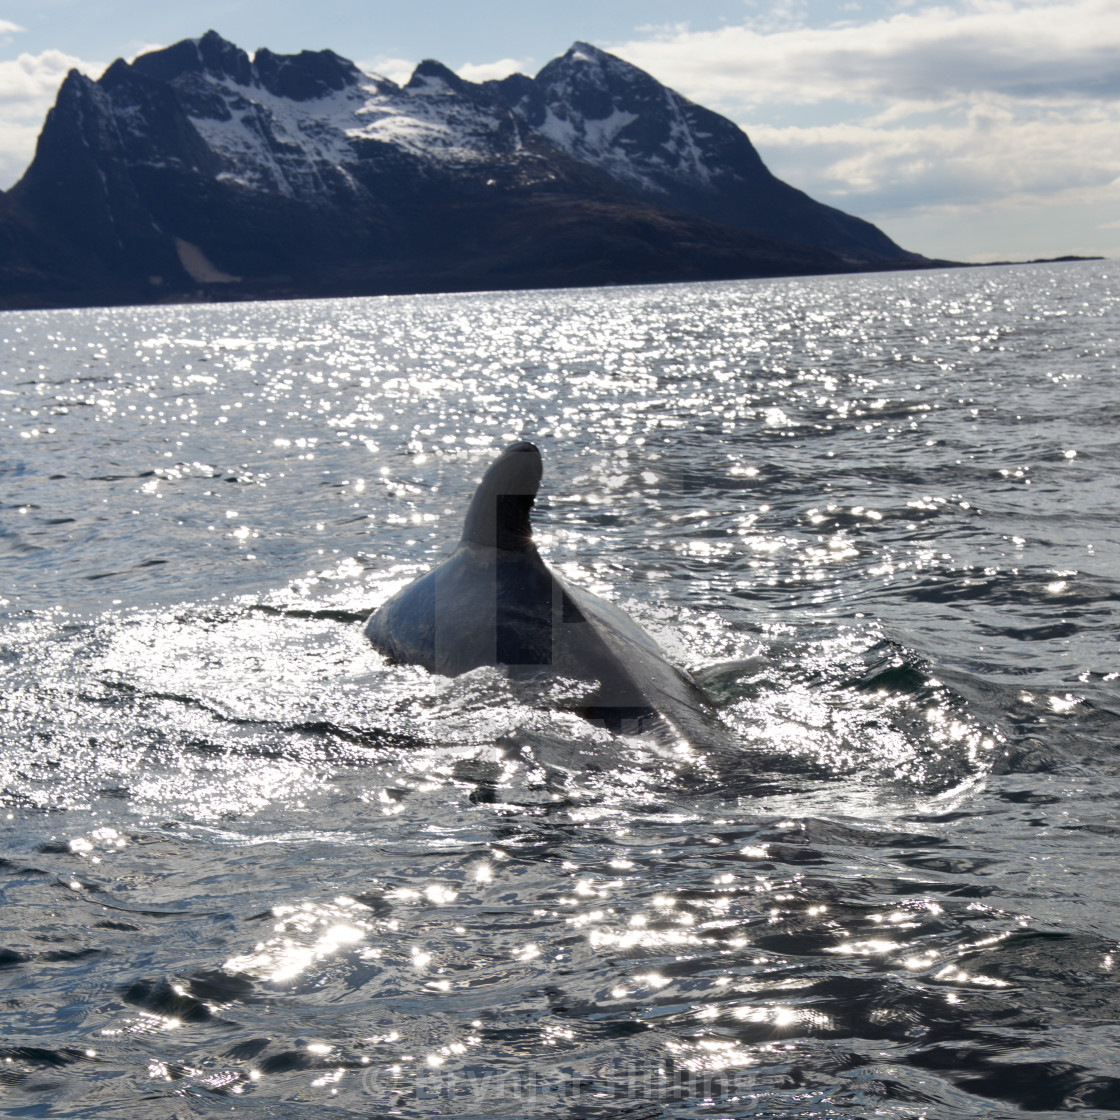 """""""Whale surfacing in Norway"""" stock image"""